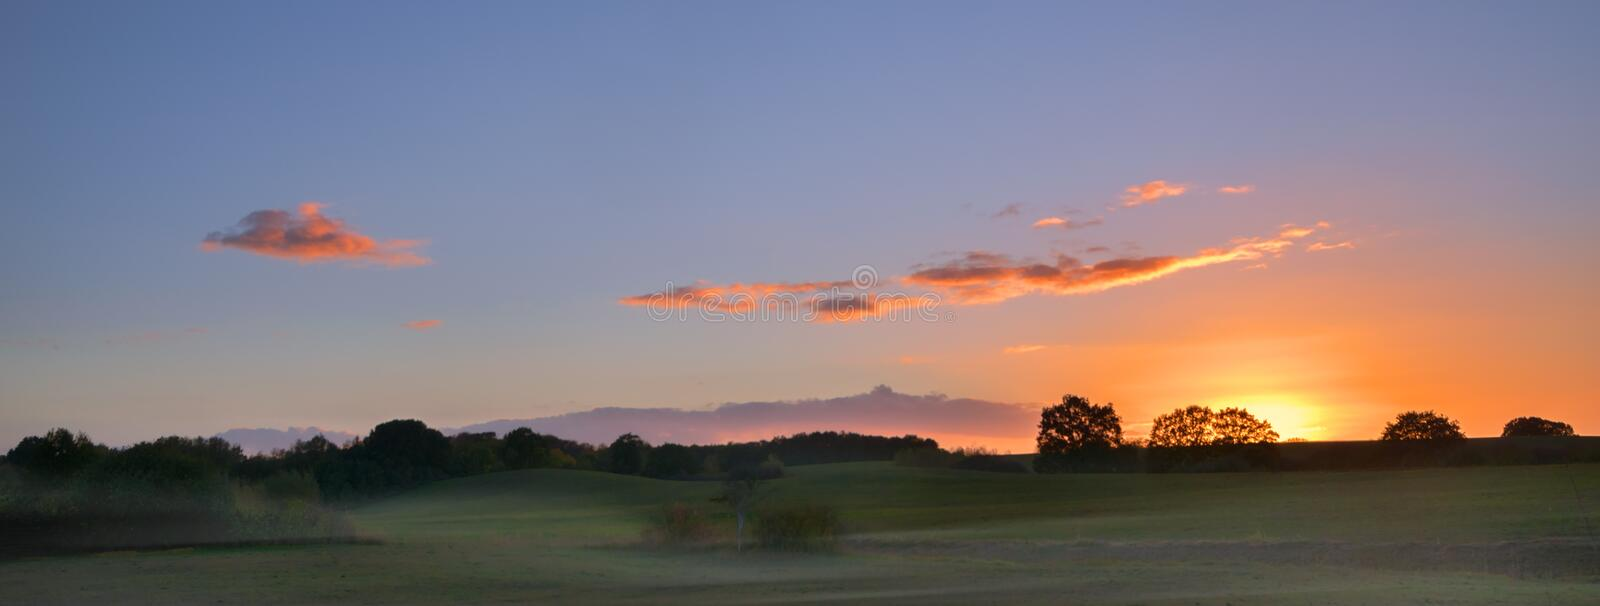 sunrise with glowing clouds over a wide rural landscape with meadows and trees in the morning mist, panorama format with copy spa stock images